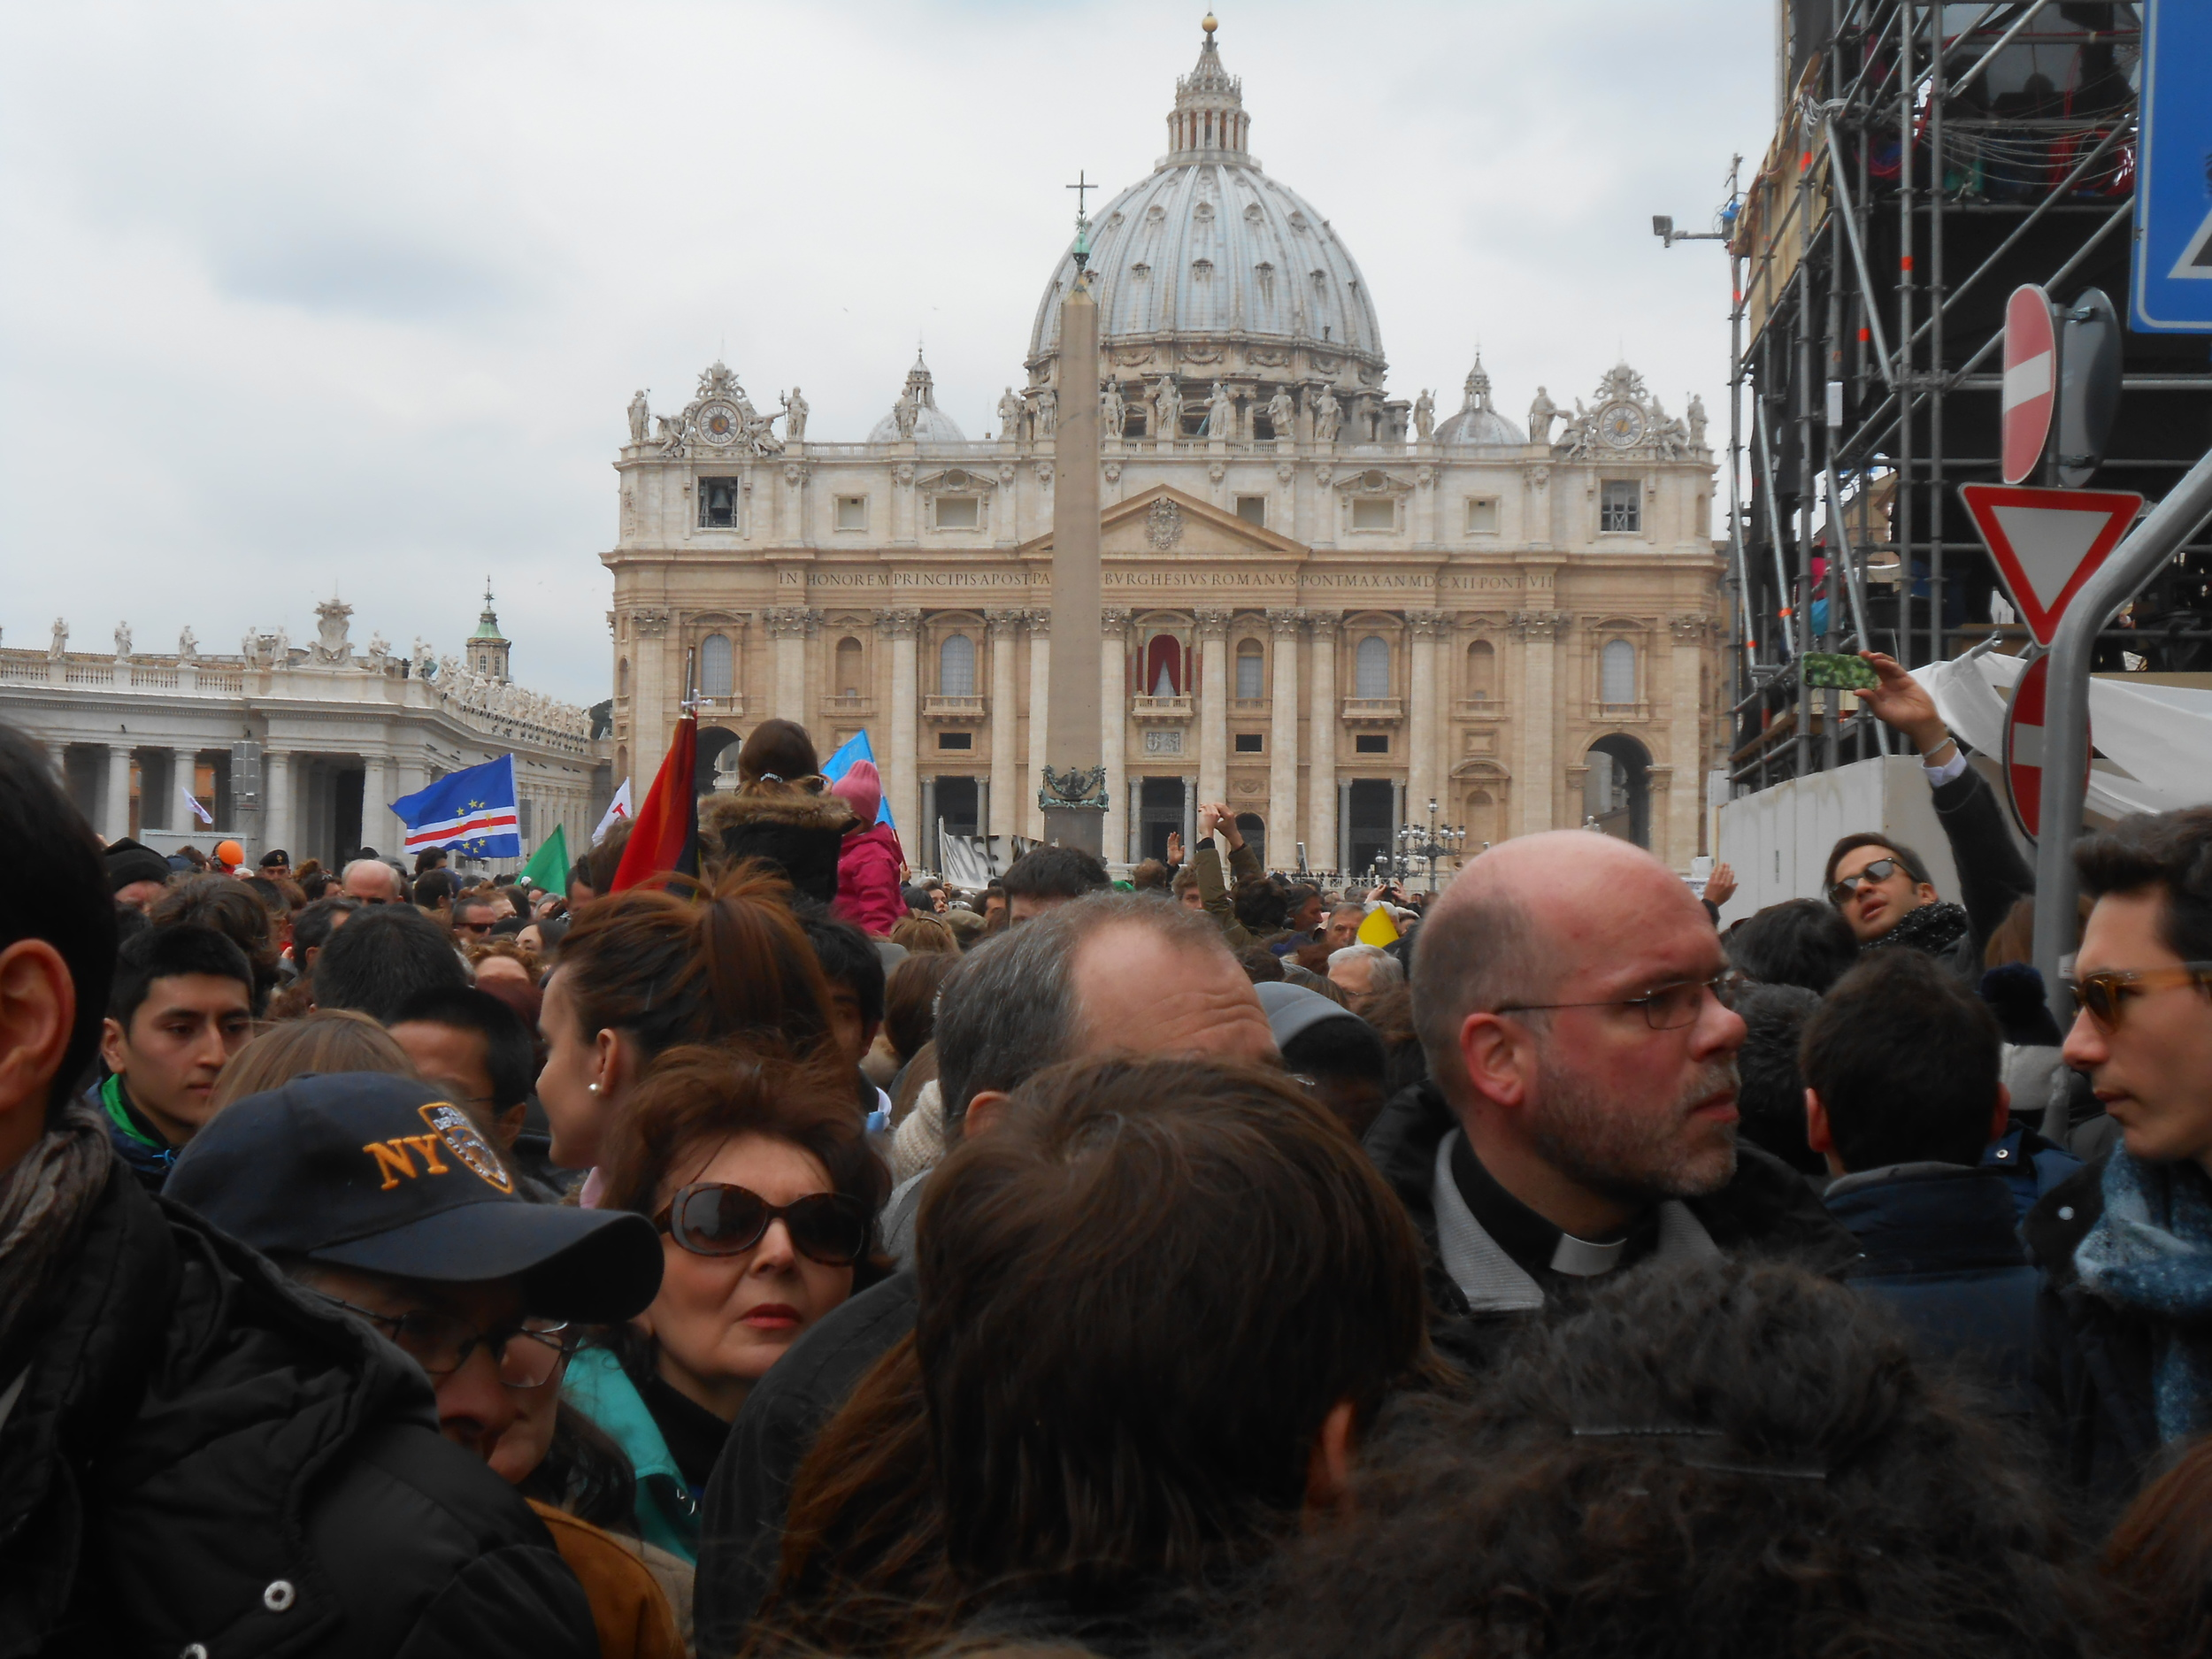 Outside the Vatican after Pope Francis's first public blessing.